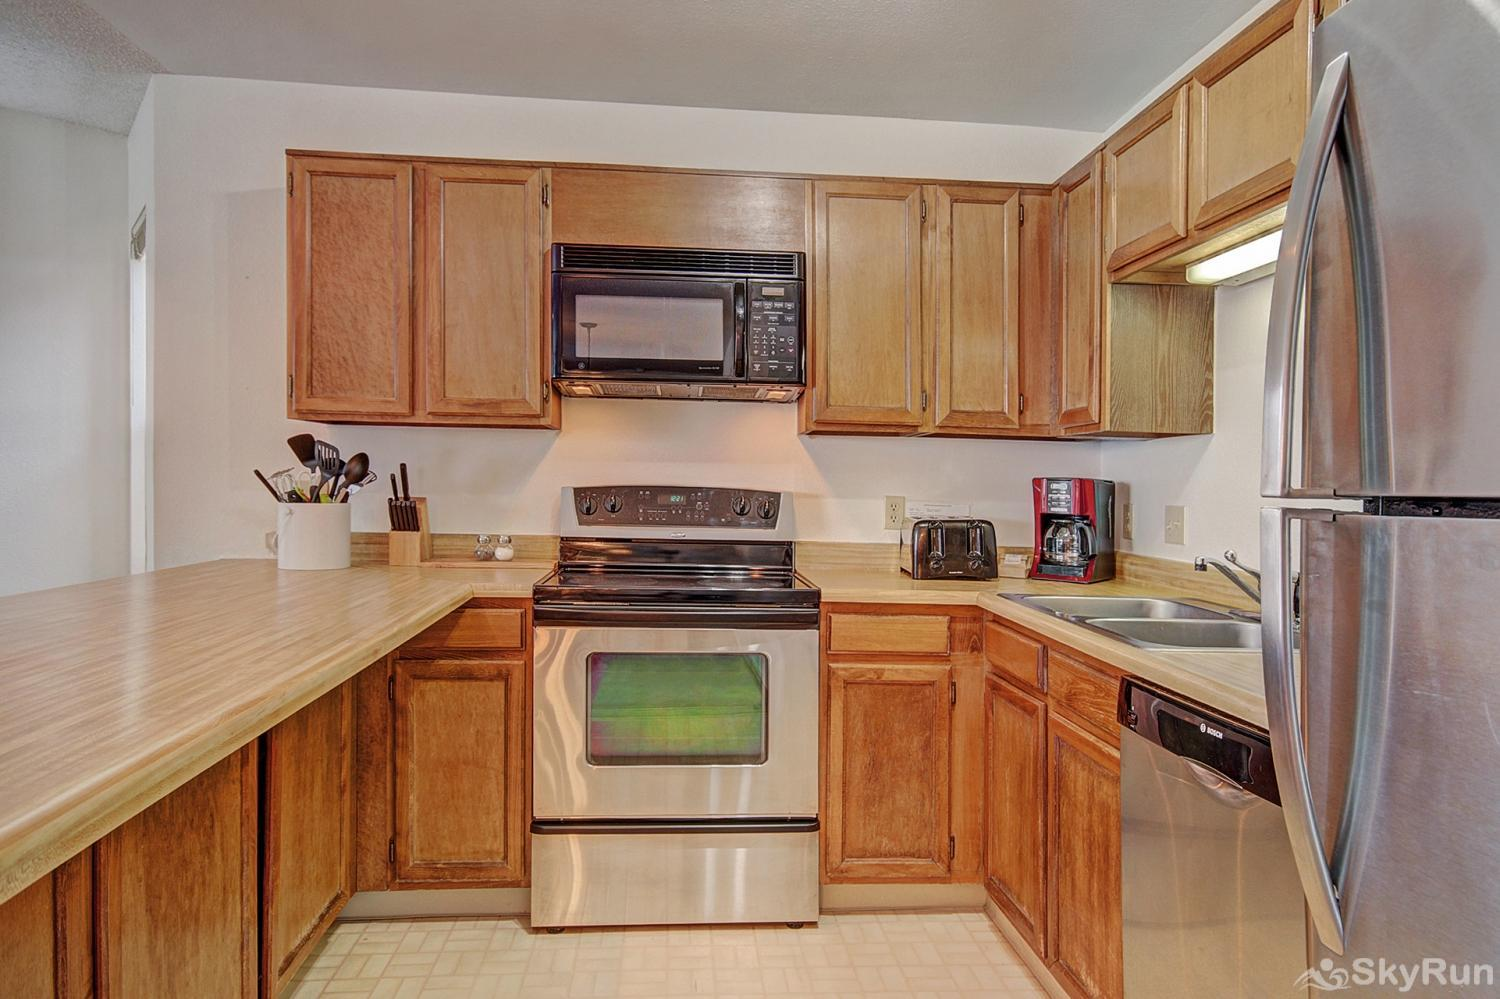 Tyra Summit A2F Fully upgraded kitchen with stainless steel appliances